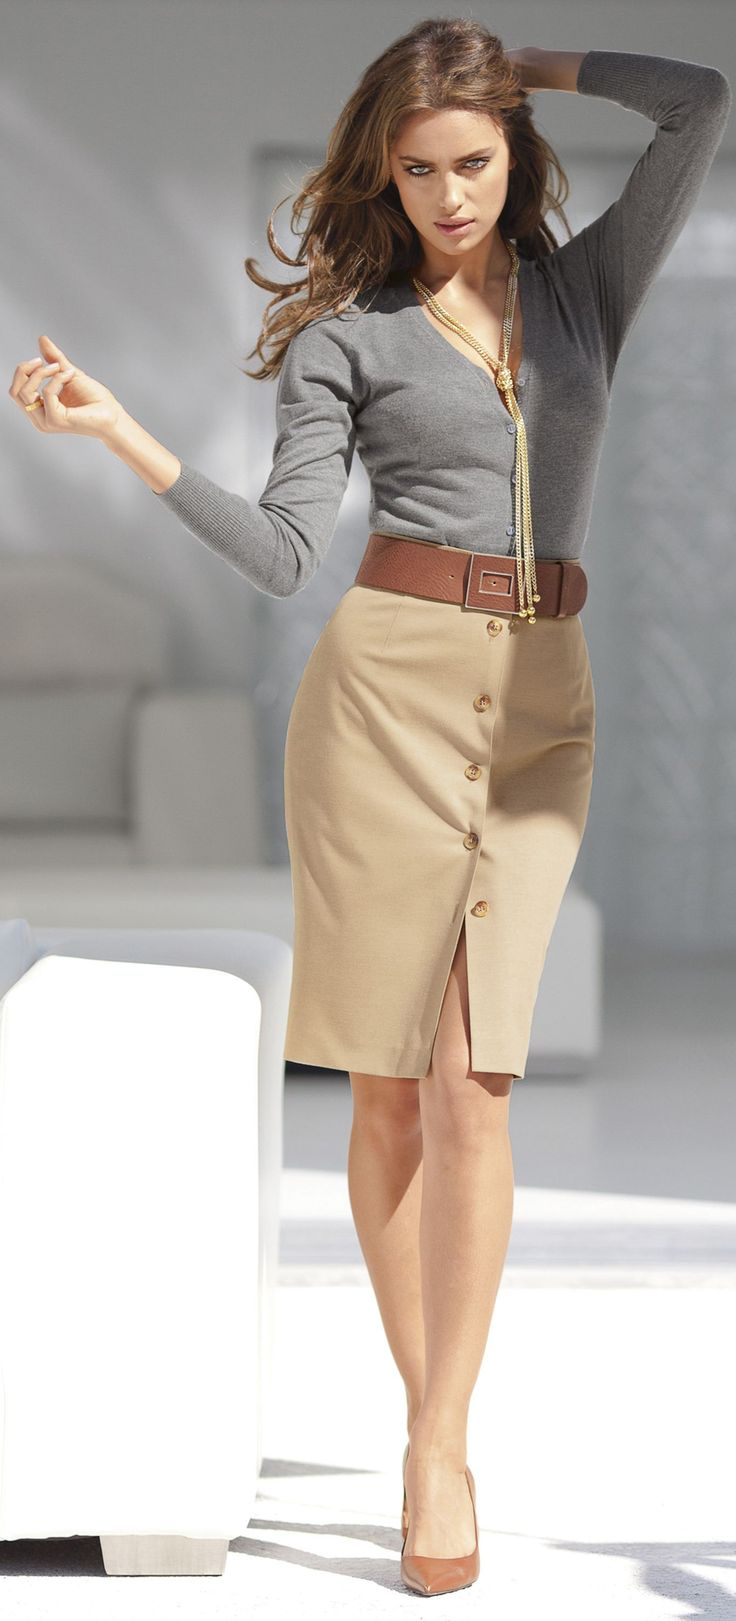 casual business outfit for a light day in the office....Because we all give that sexy stare at the office....